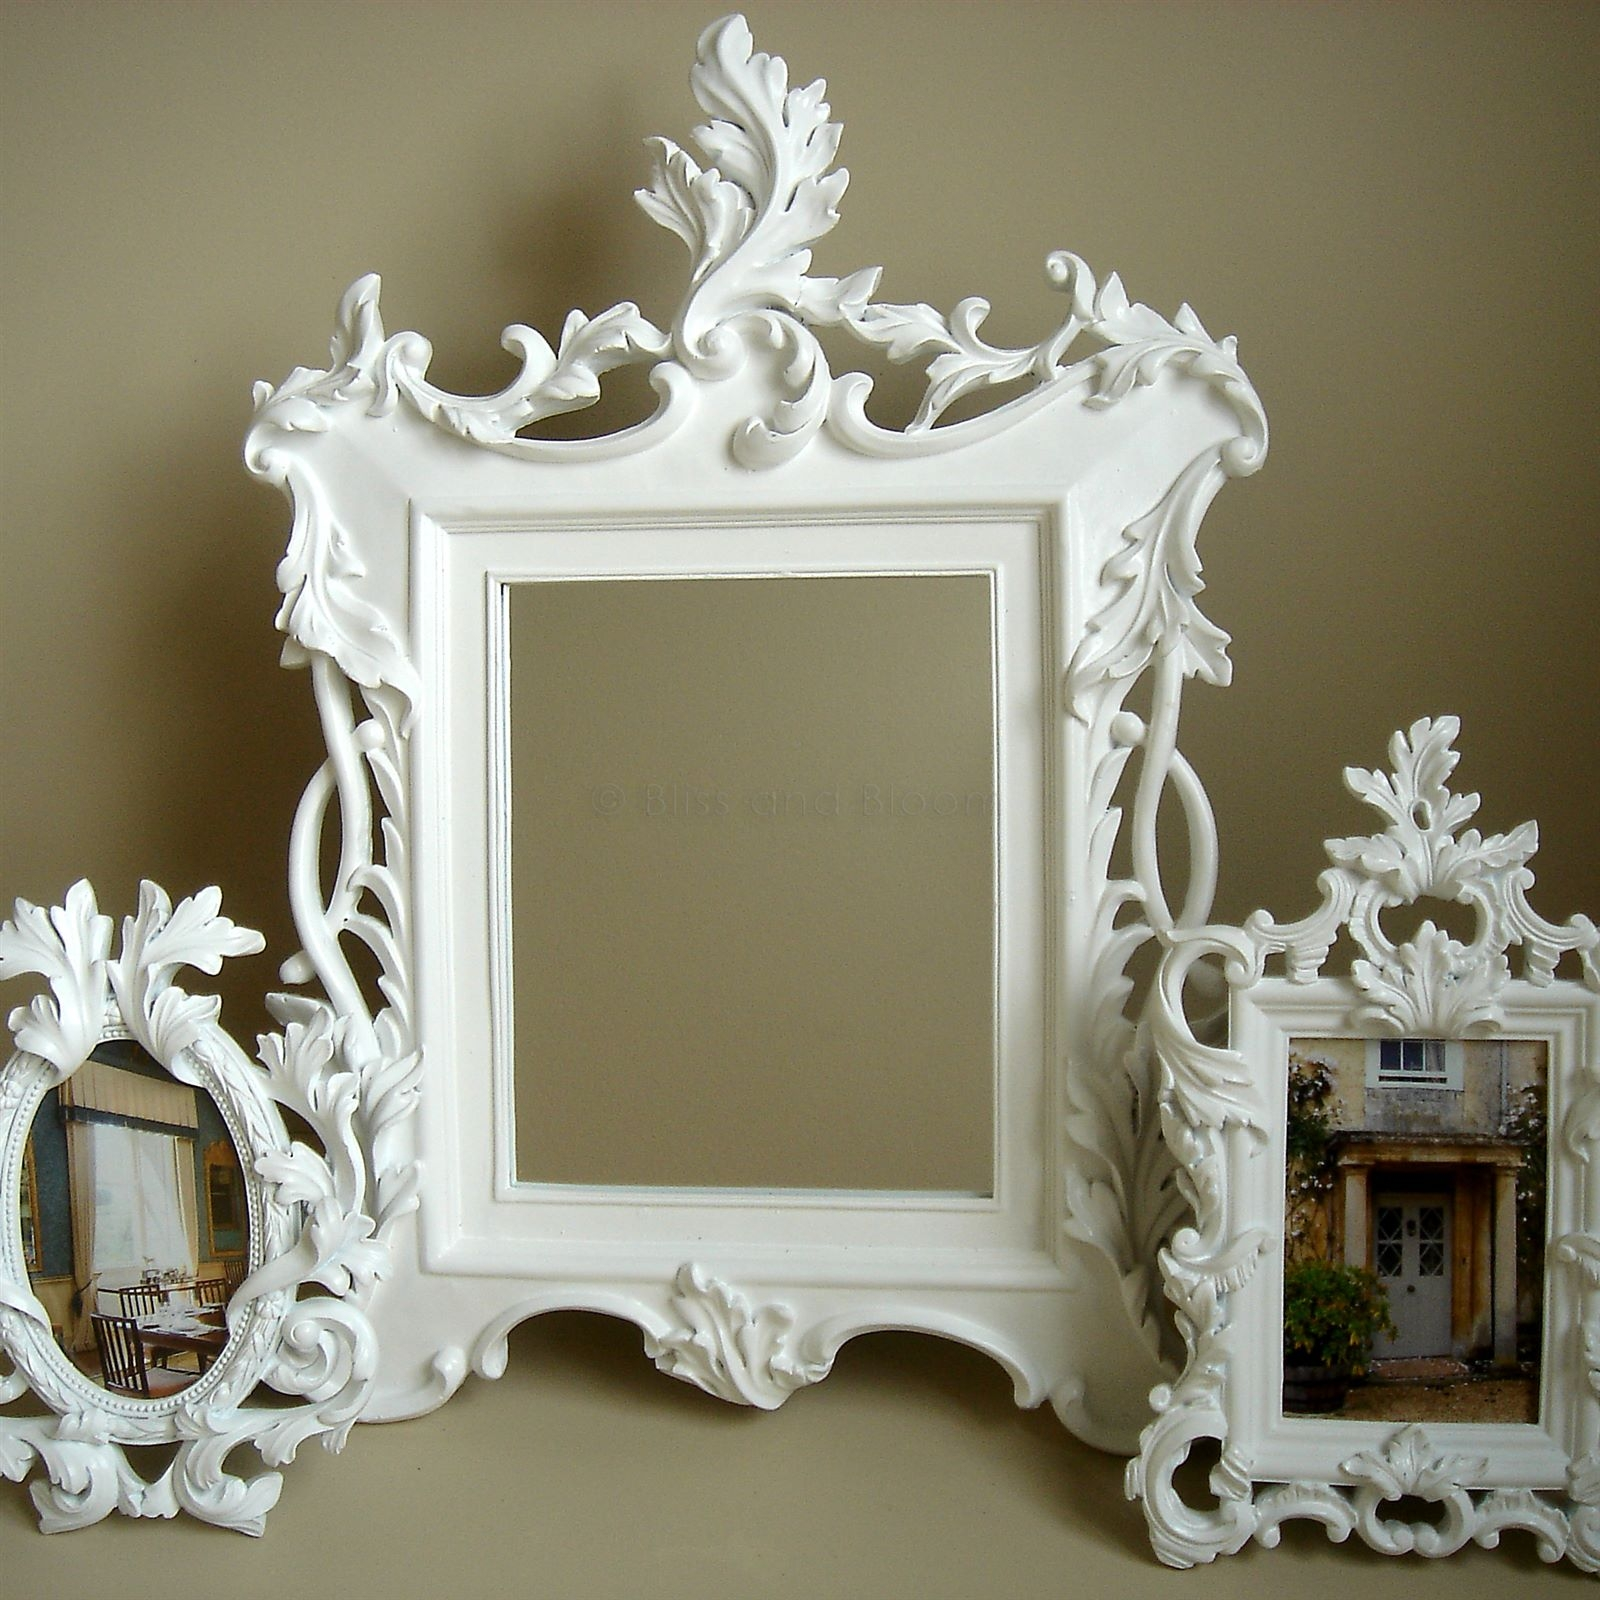 White Baroque Mirror Seconds Bliss And Bloom Ltd For White Baroque Wall Mirror (Image 12 of 15)